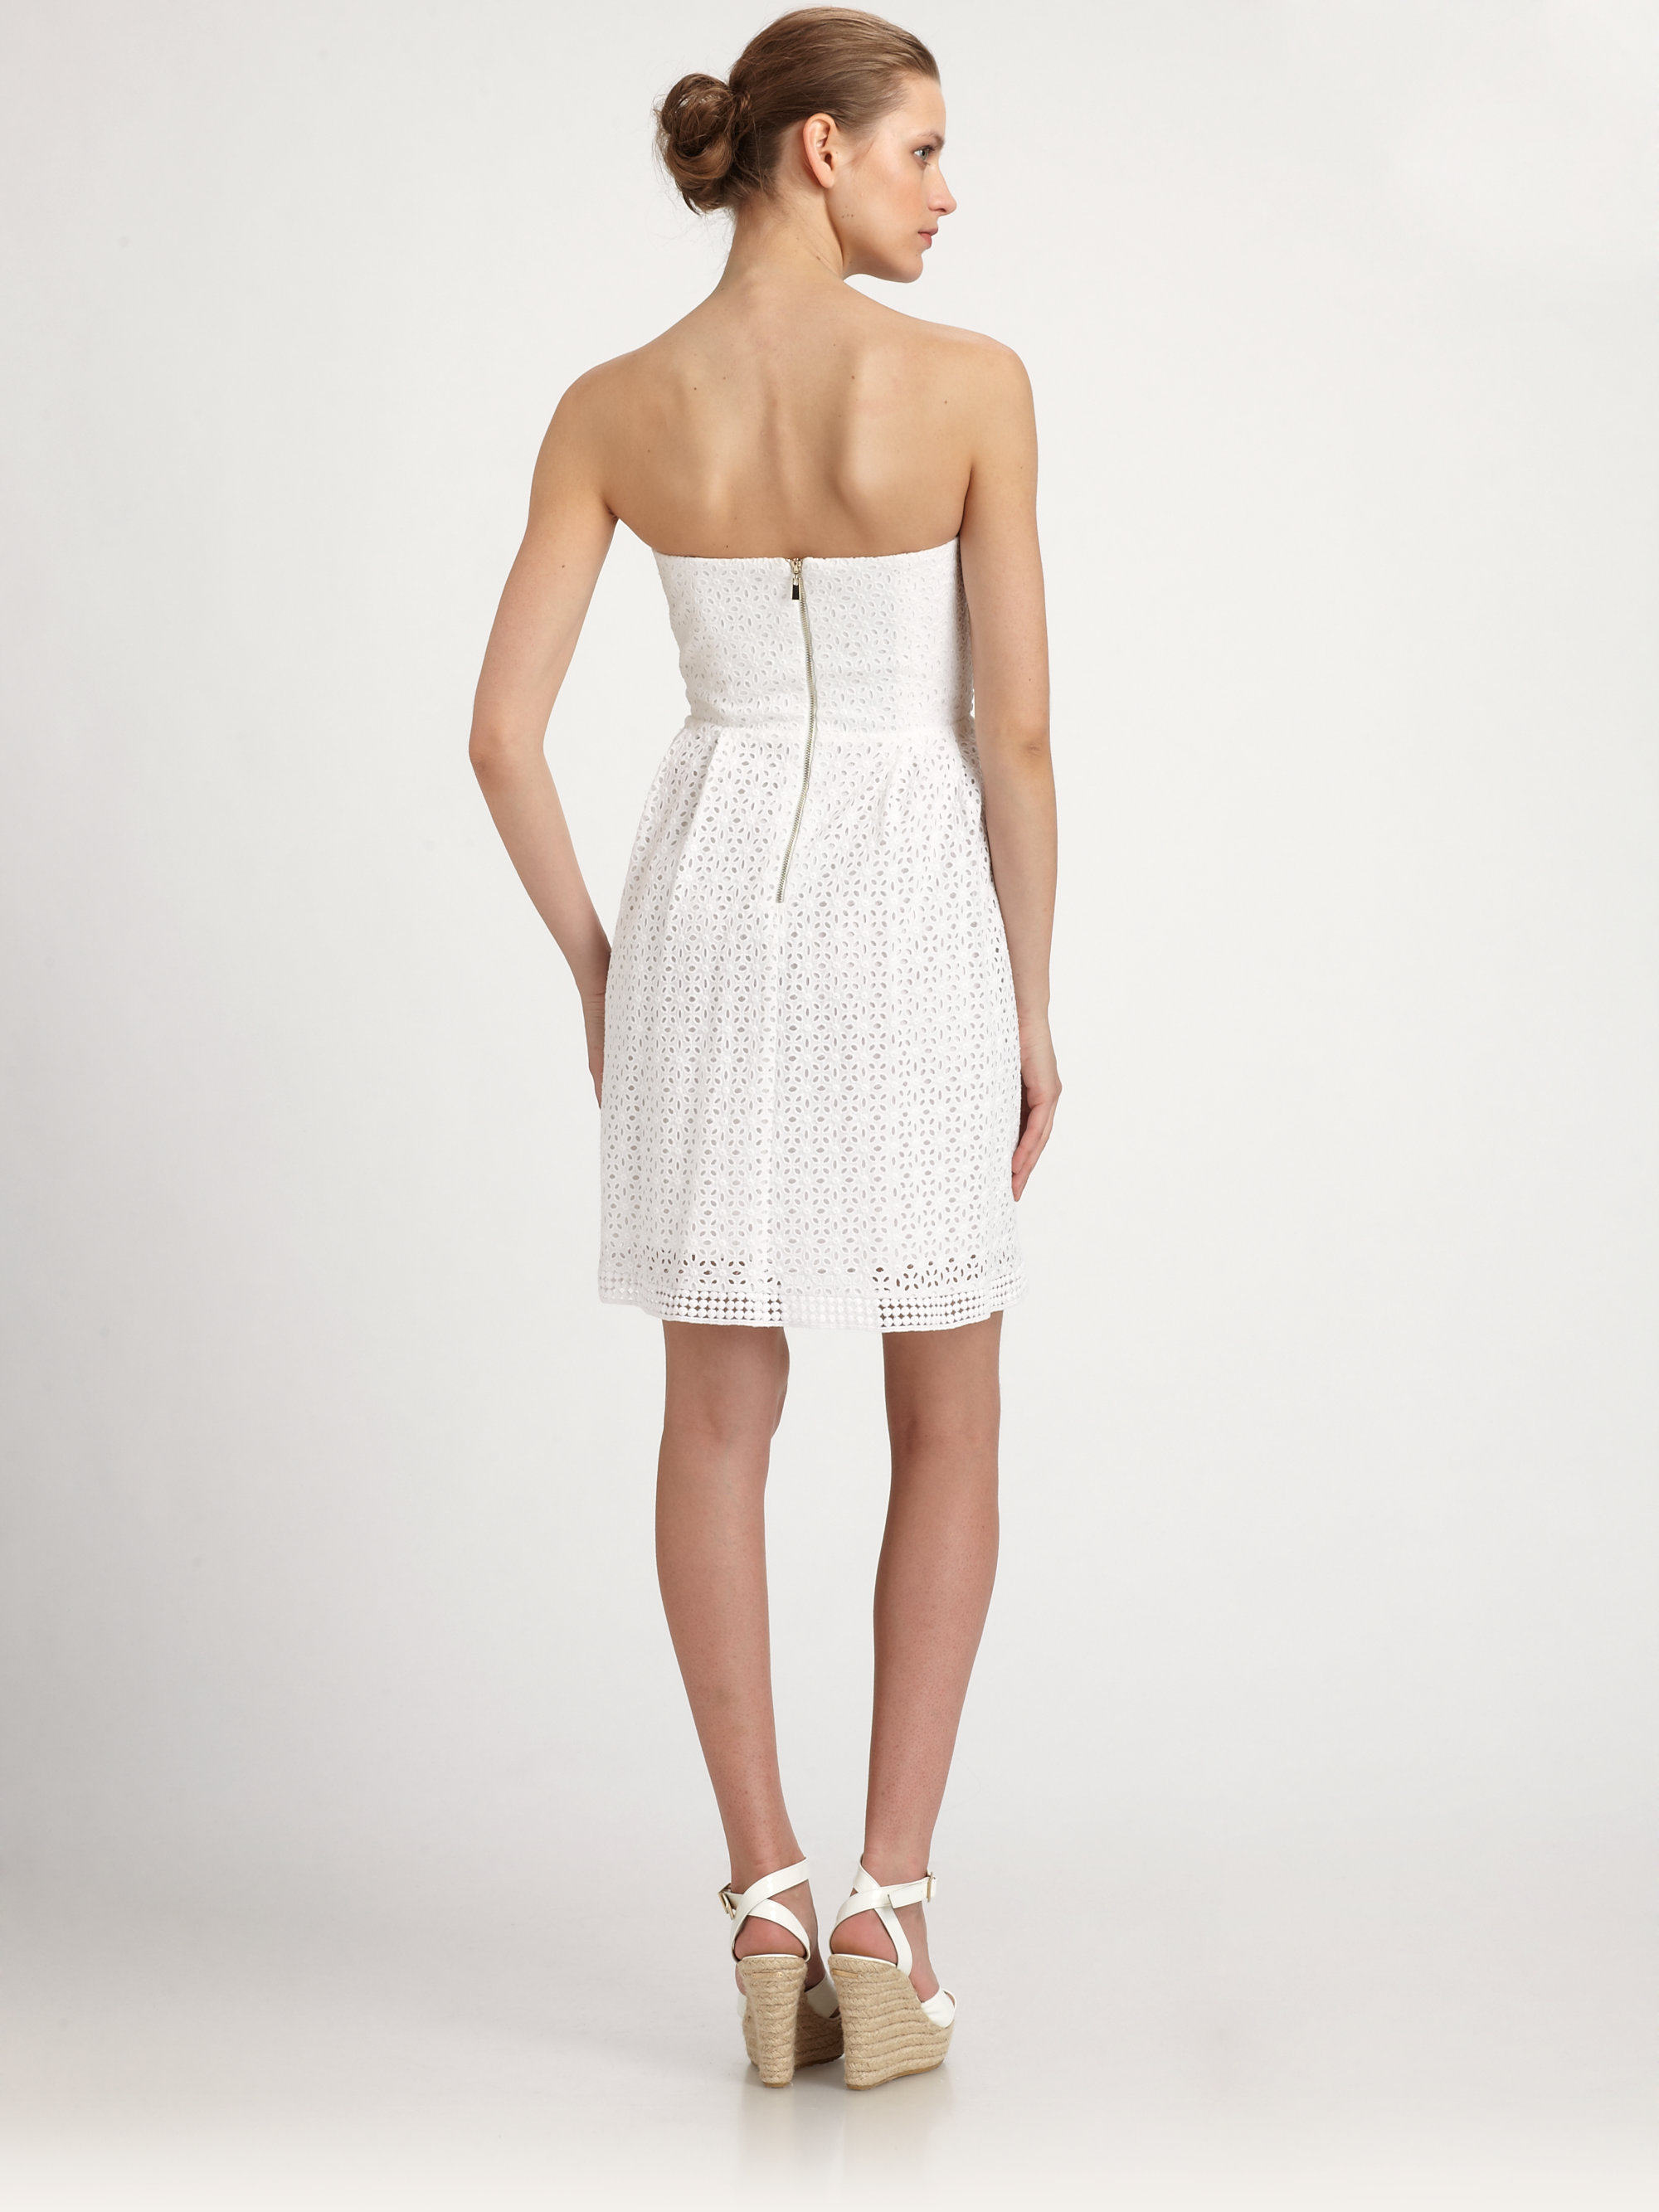 Laundry by shelli segal Strapless Cotton Eyelet Dress in White - Lyst